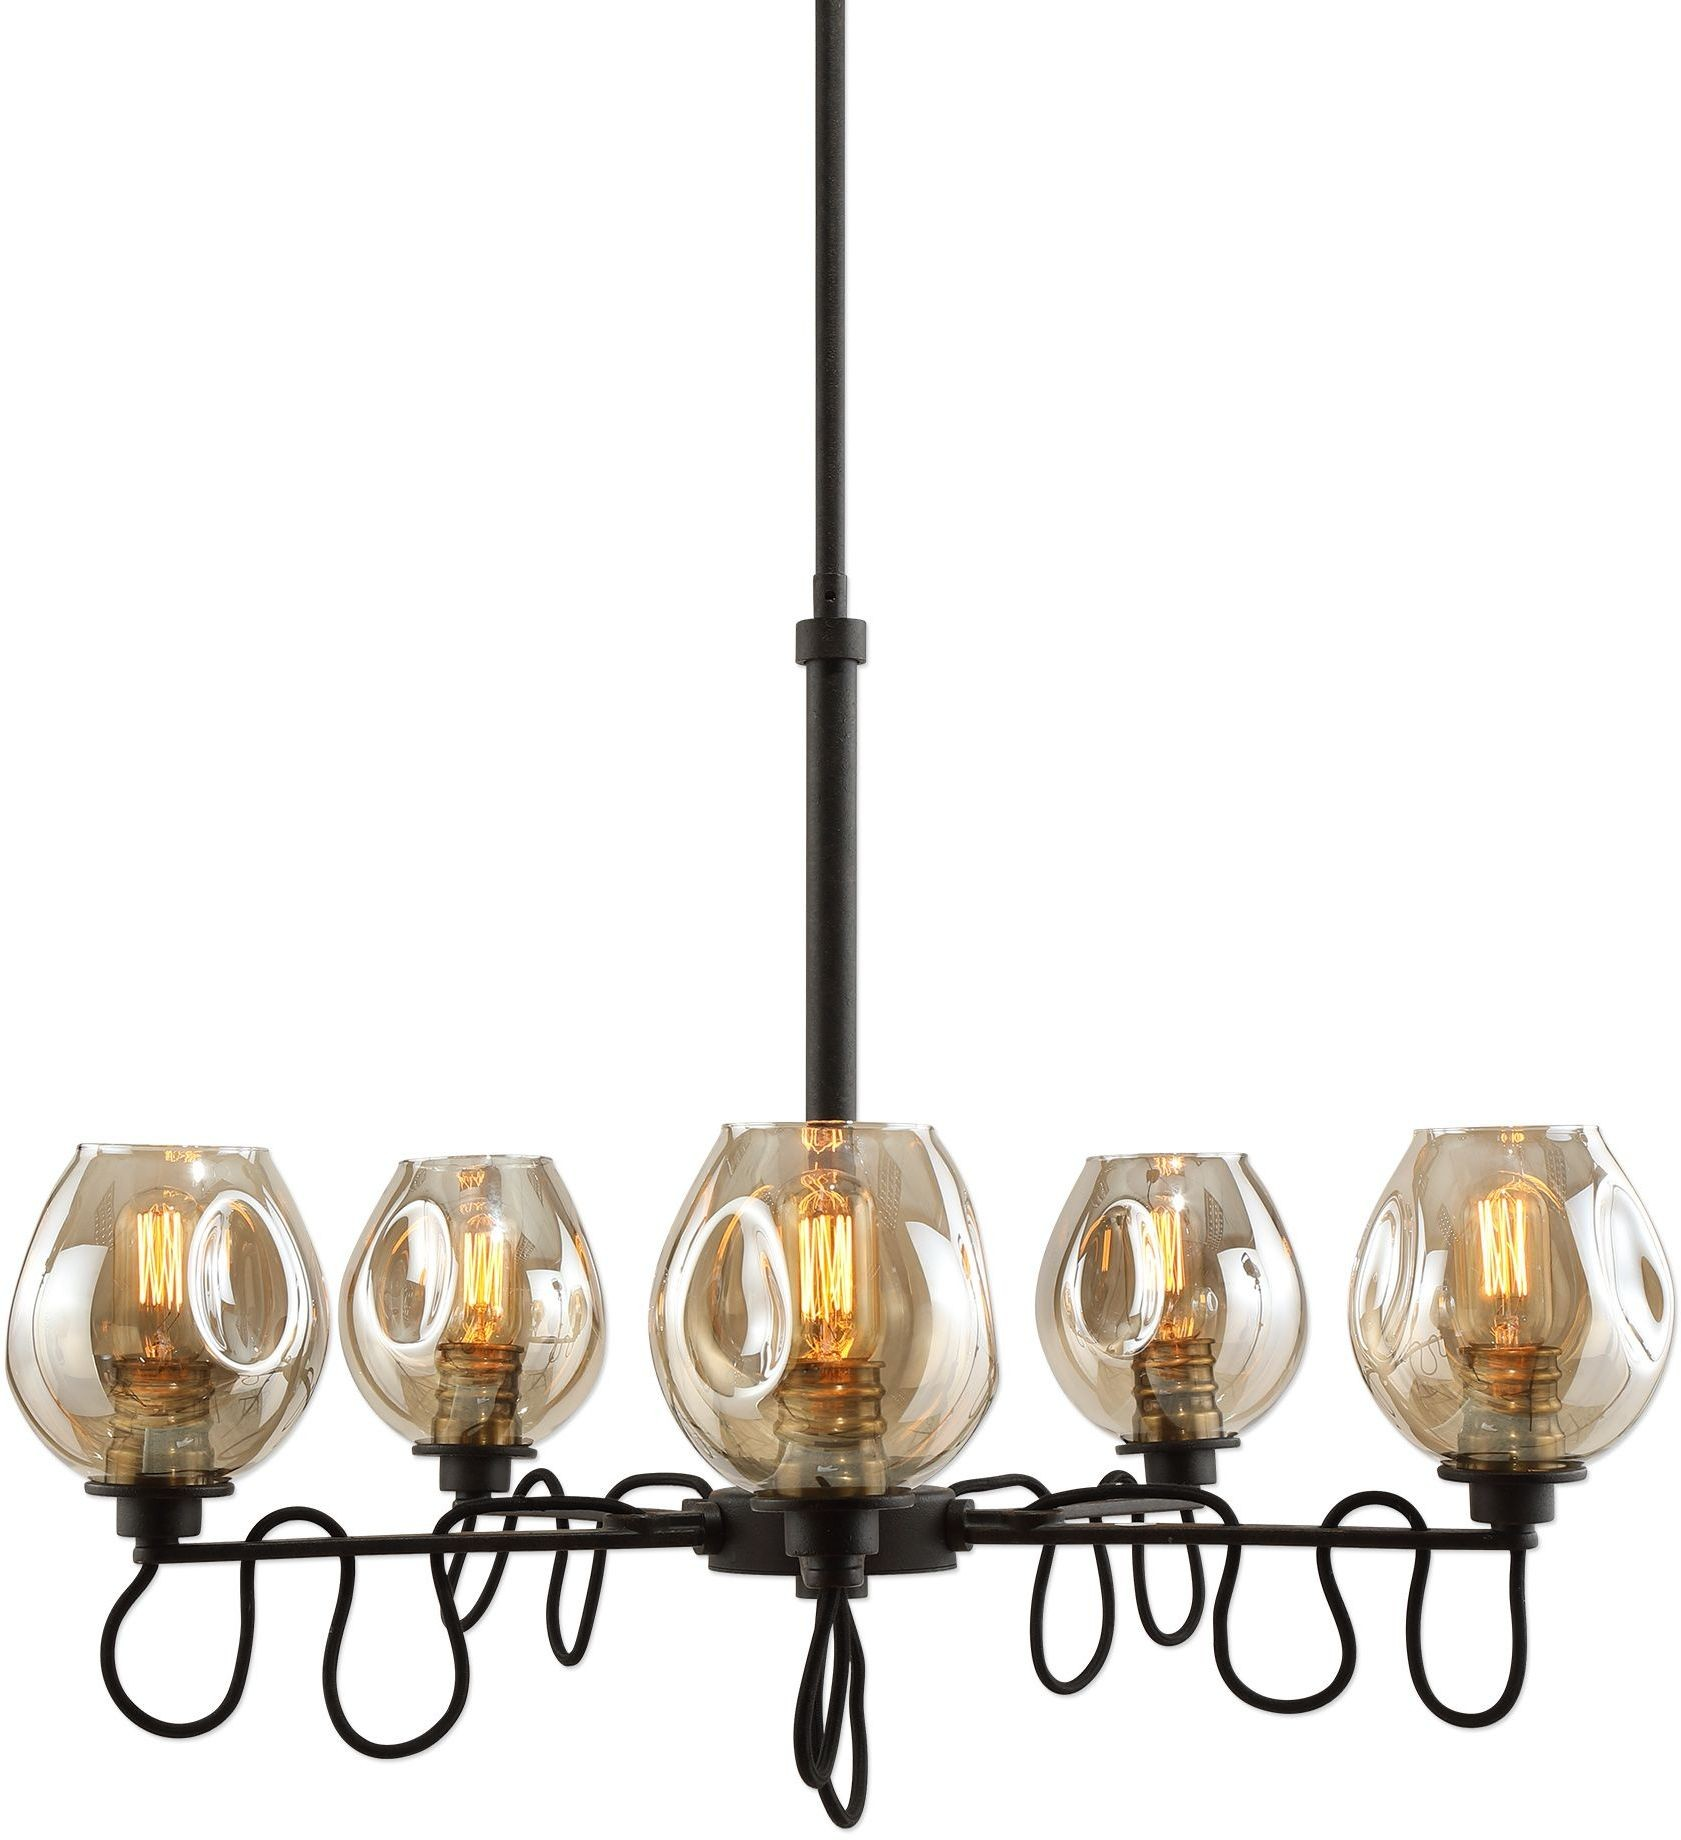 Fritz 5 light gold glass chandelier from uttermost coleman furniture 2429984 arubaitofo Images